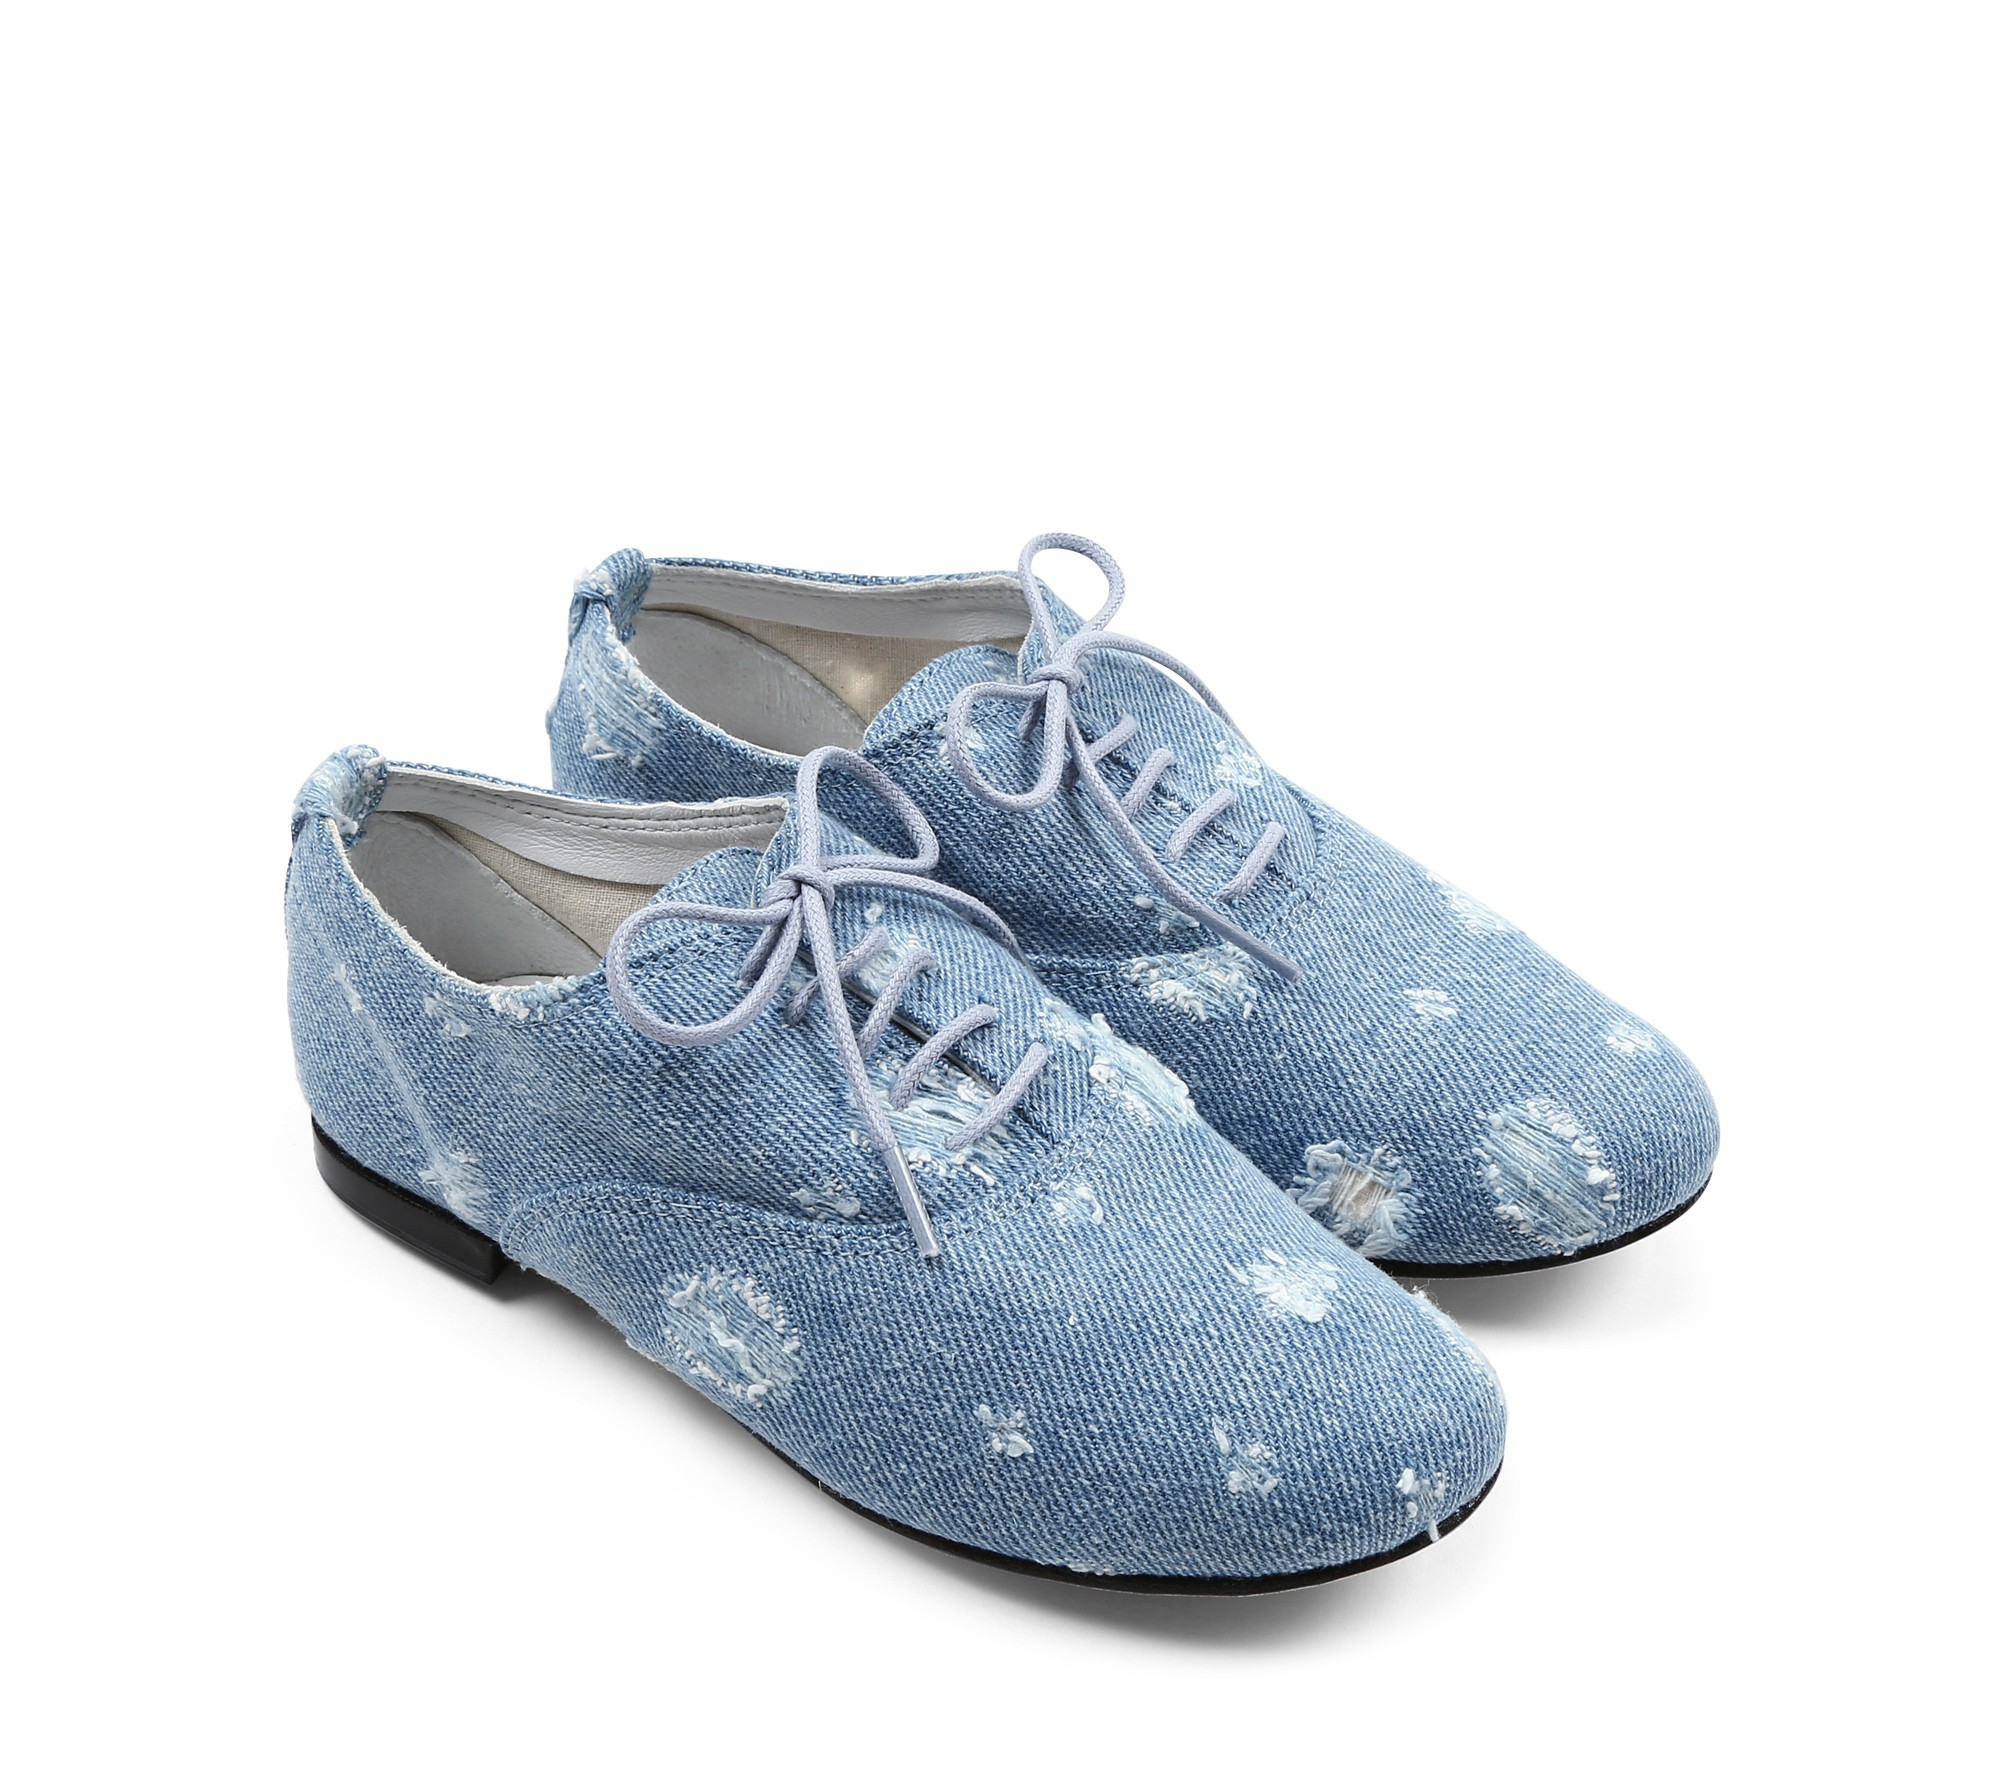 Zizi oxford shoe - Kid